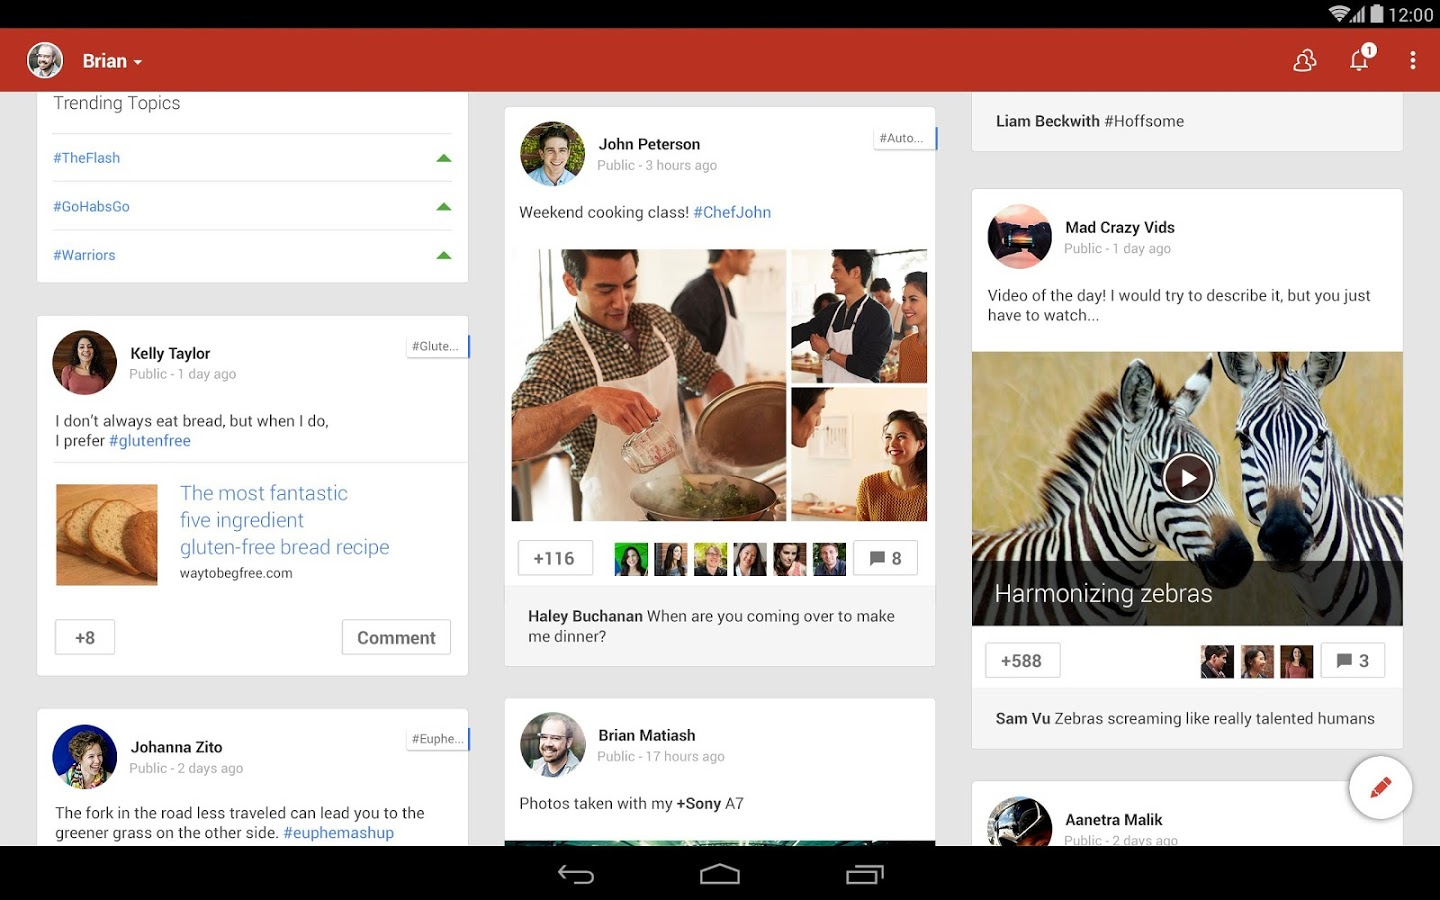 Google's Android L-Like Material Design now Available for Android Users with the Updated Google   App